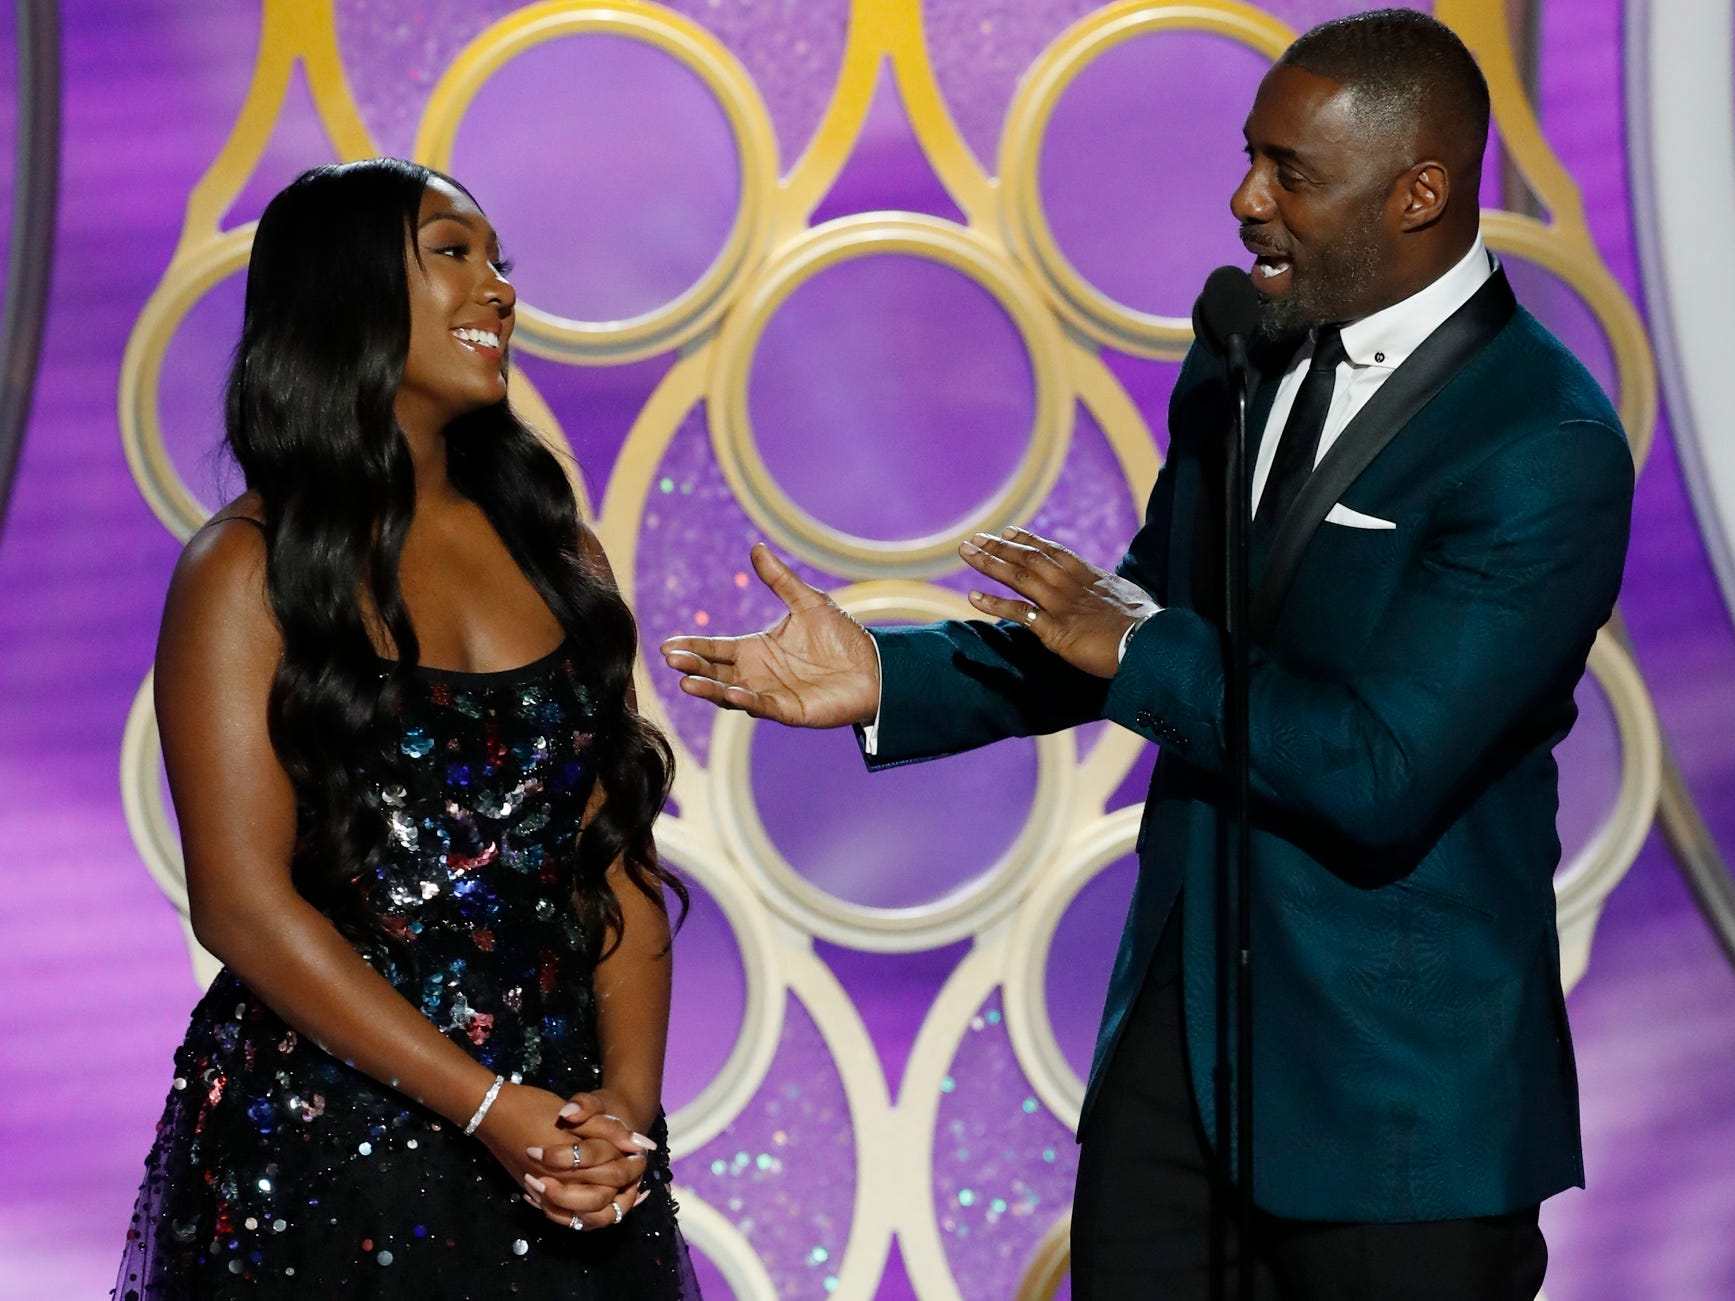 Isan Elba, left and Idris Elba talk on stage during the 76th Golden Globe Awards.